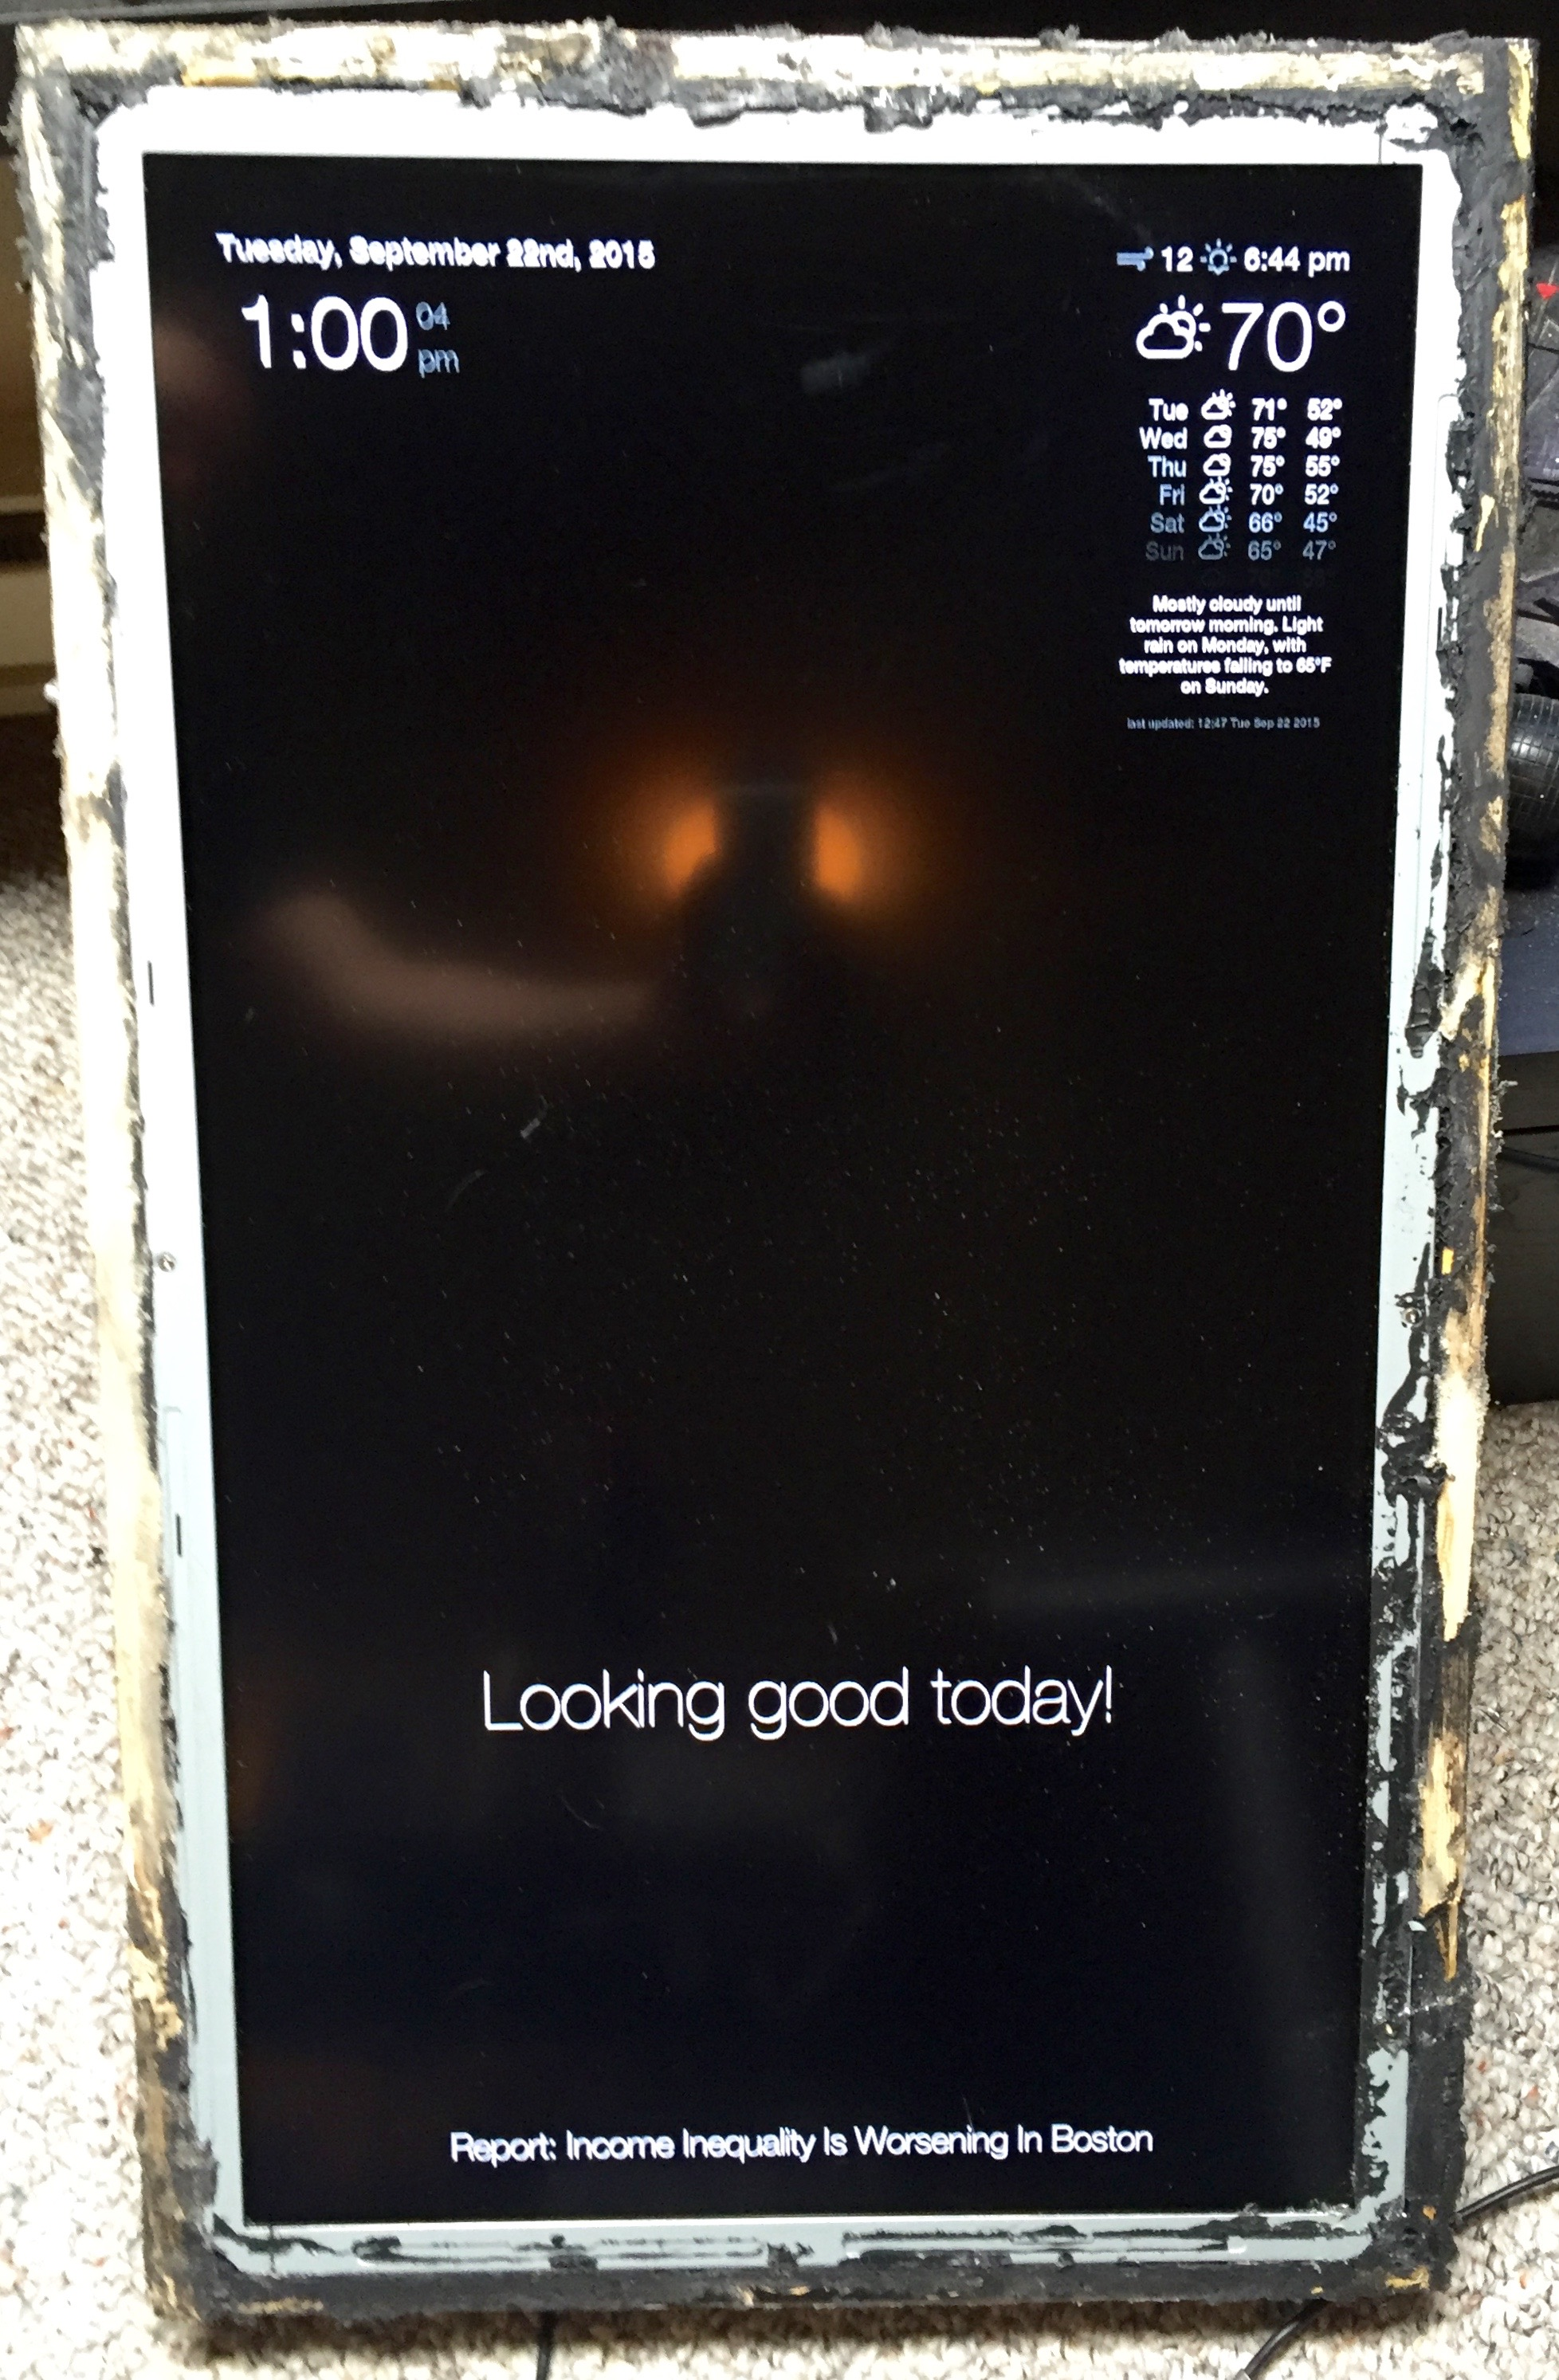 The screen and frame without the mirror, slightly damaged by the broken glass.